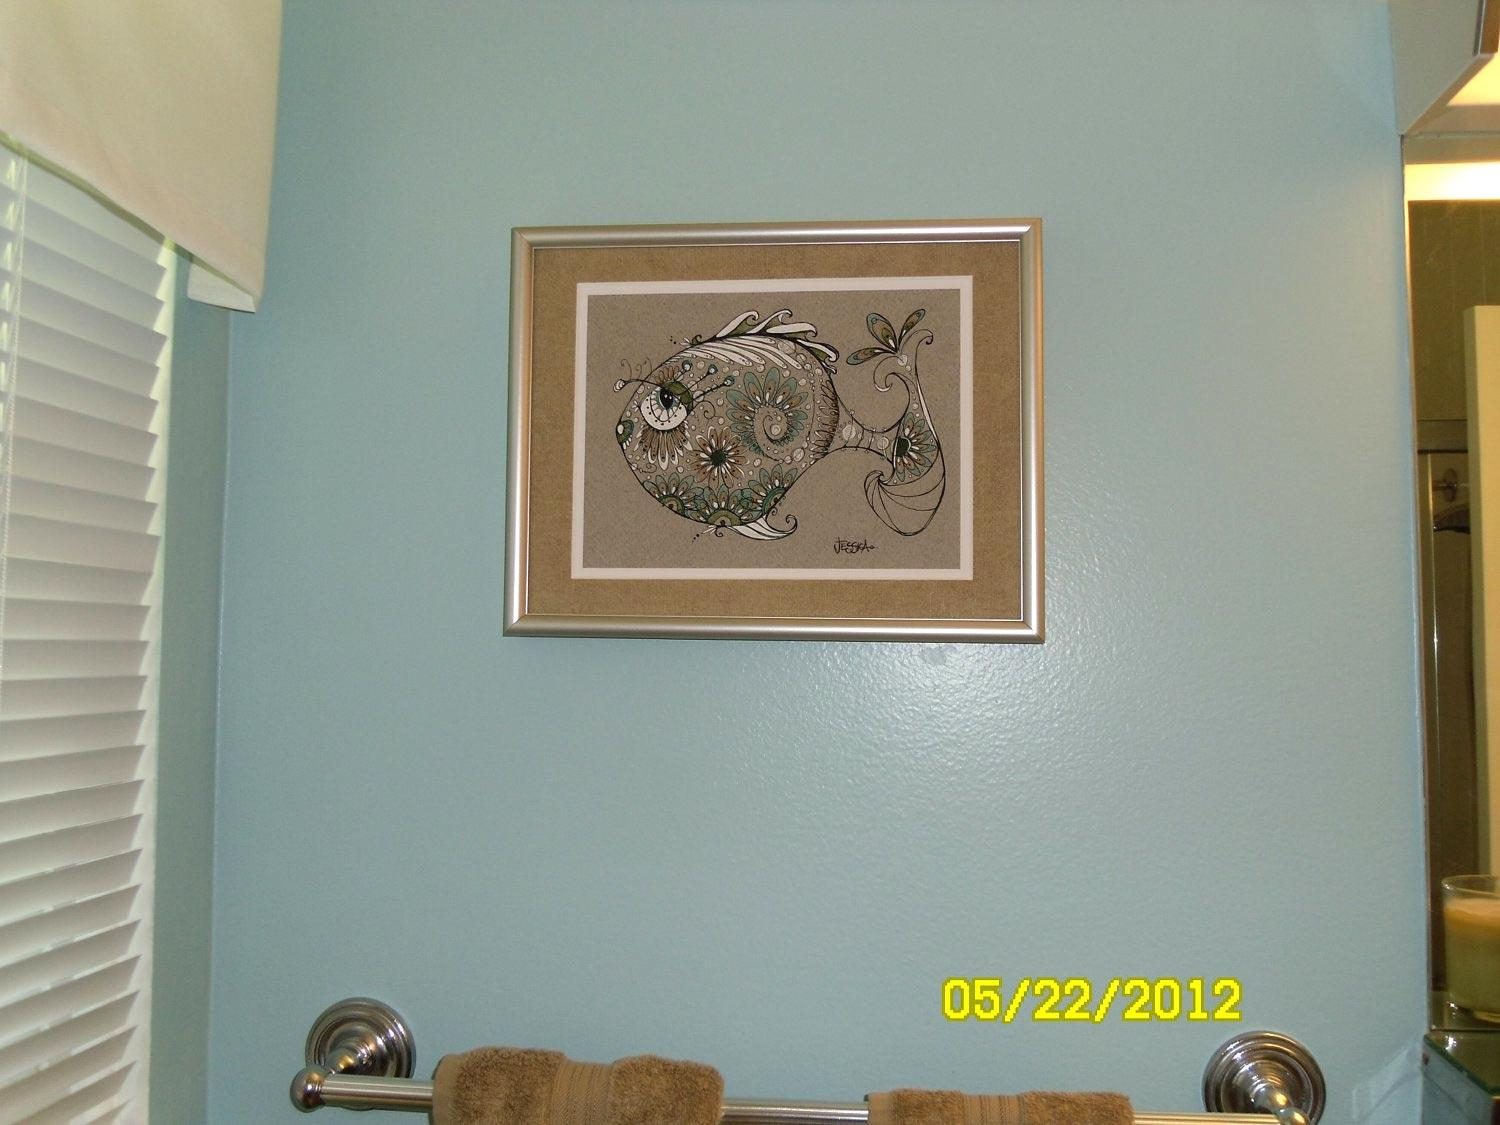 Customer Appreciation Photo – George – Yes, He's A Pretty Fish Regarding Bathroom Wall Hangings (View 14 of 20)